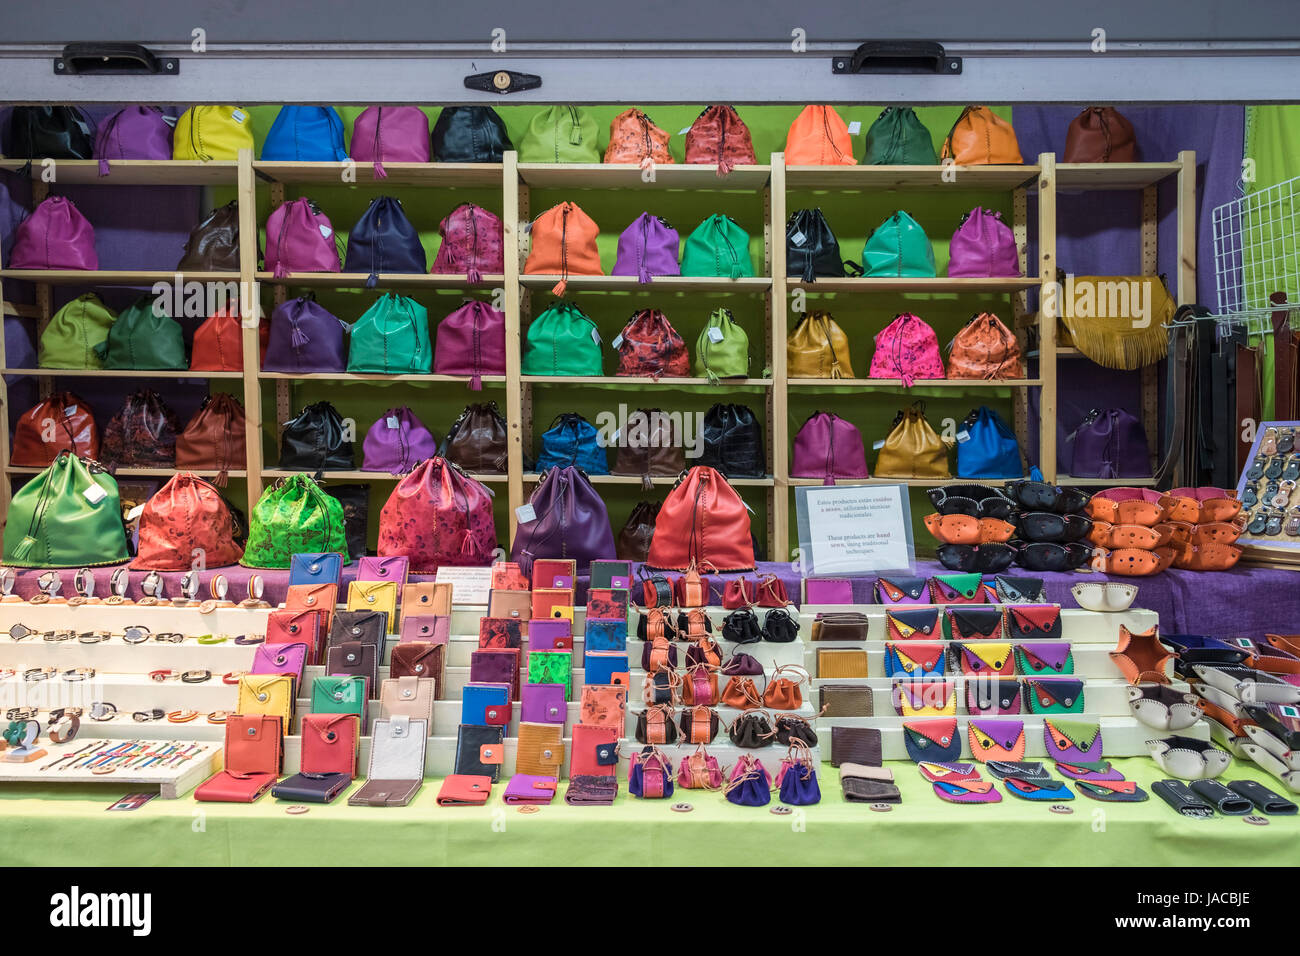 Colourful hand made artisan leather bags, wallets and purses on display and for sale at a street market stall, Madrid, - Stock Image